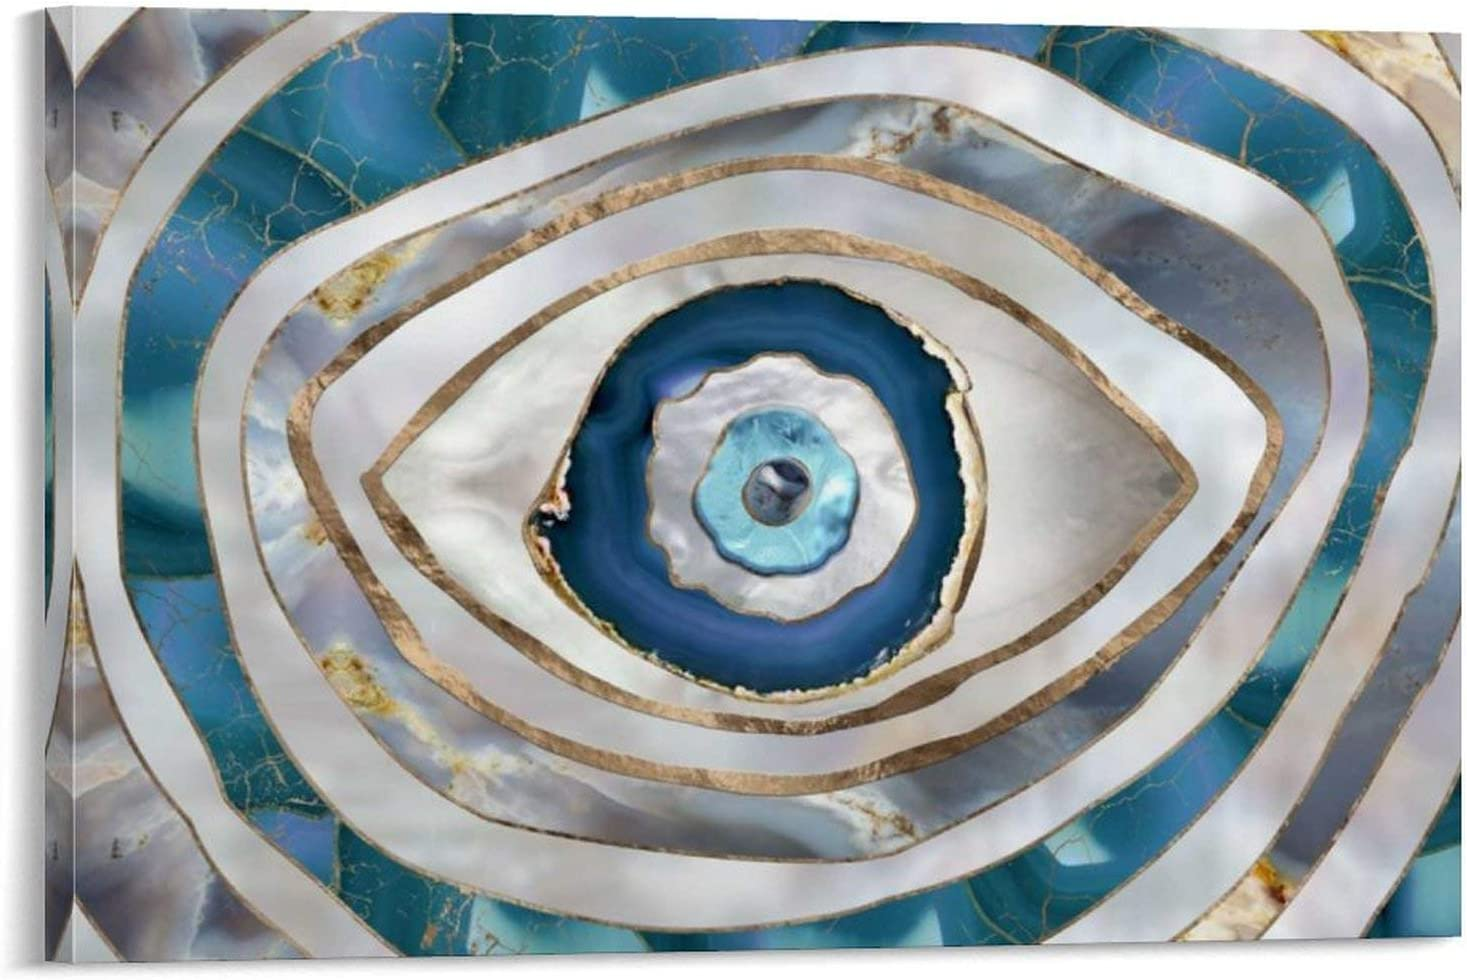 maojin Evil Eye Amulet Ornament Decorative Special Campaign Painting Poster Canva Louisville-Jefferson County Mall